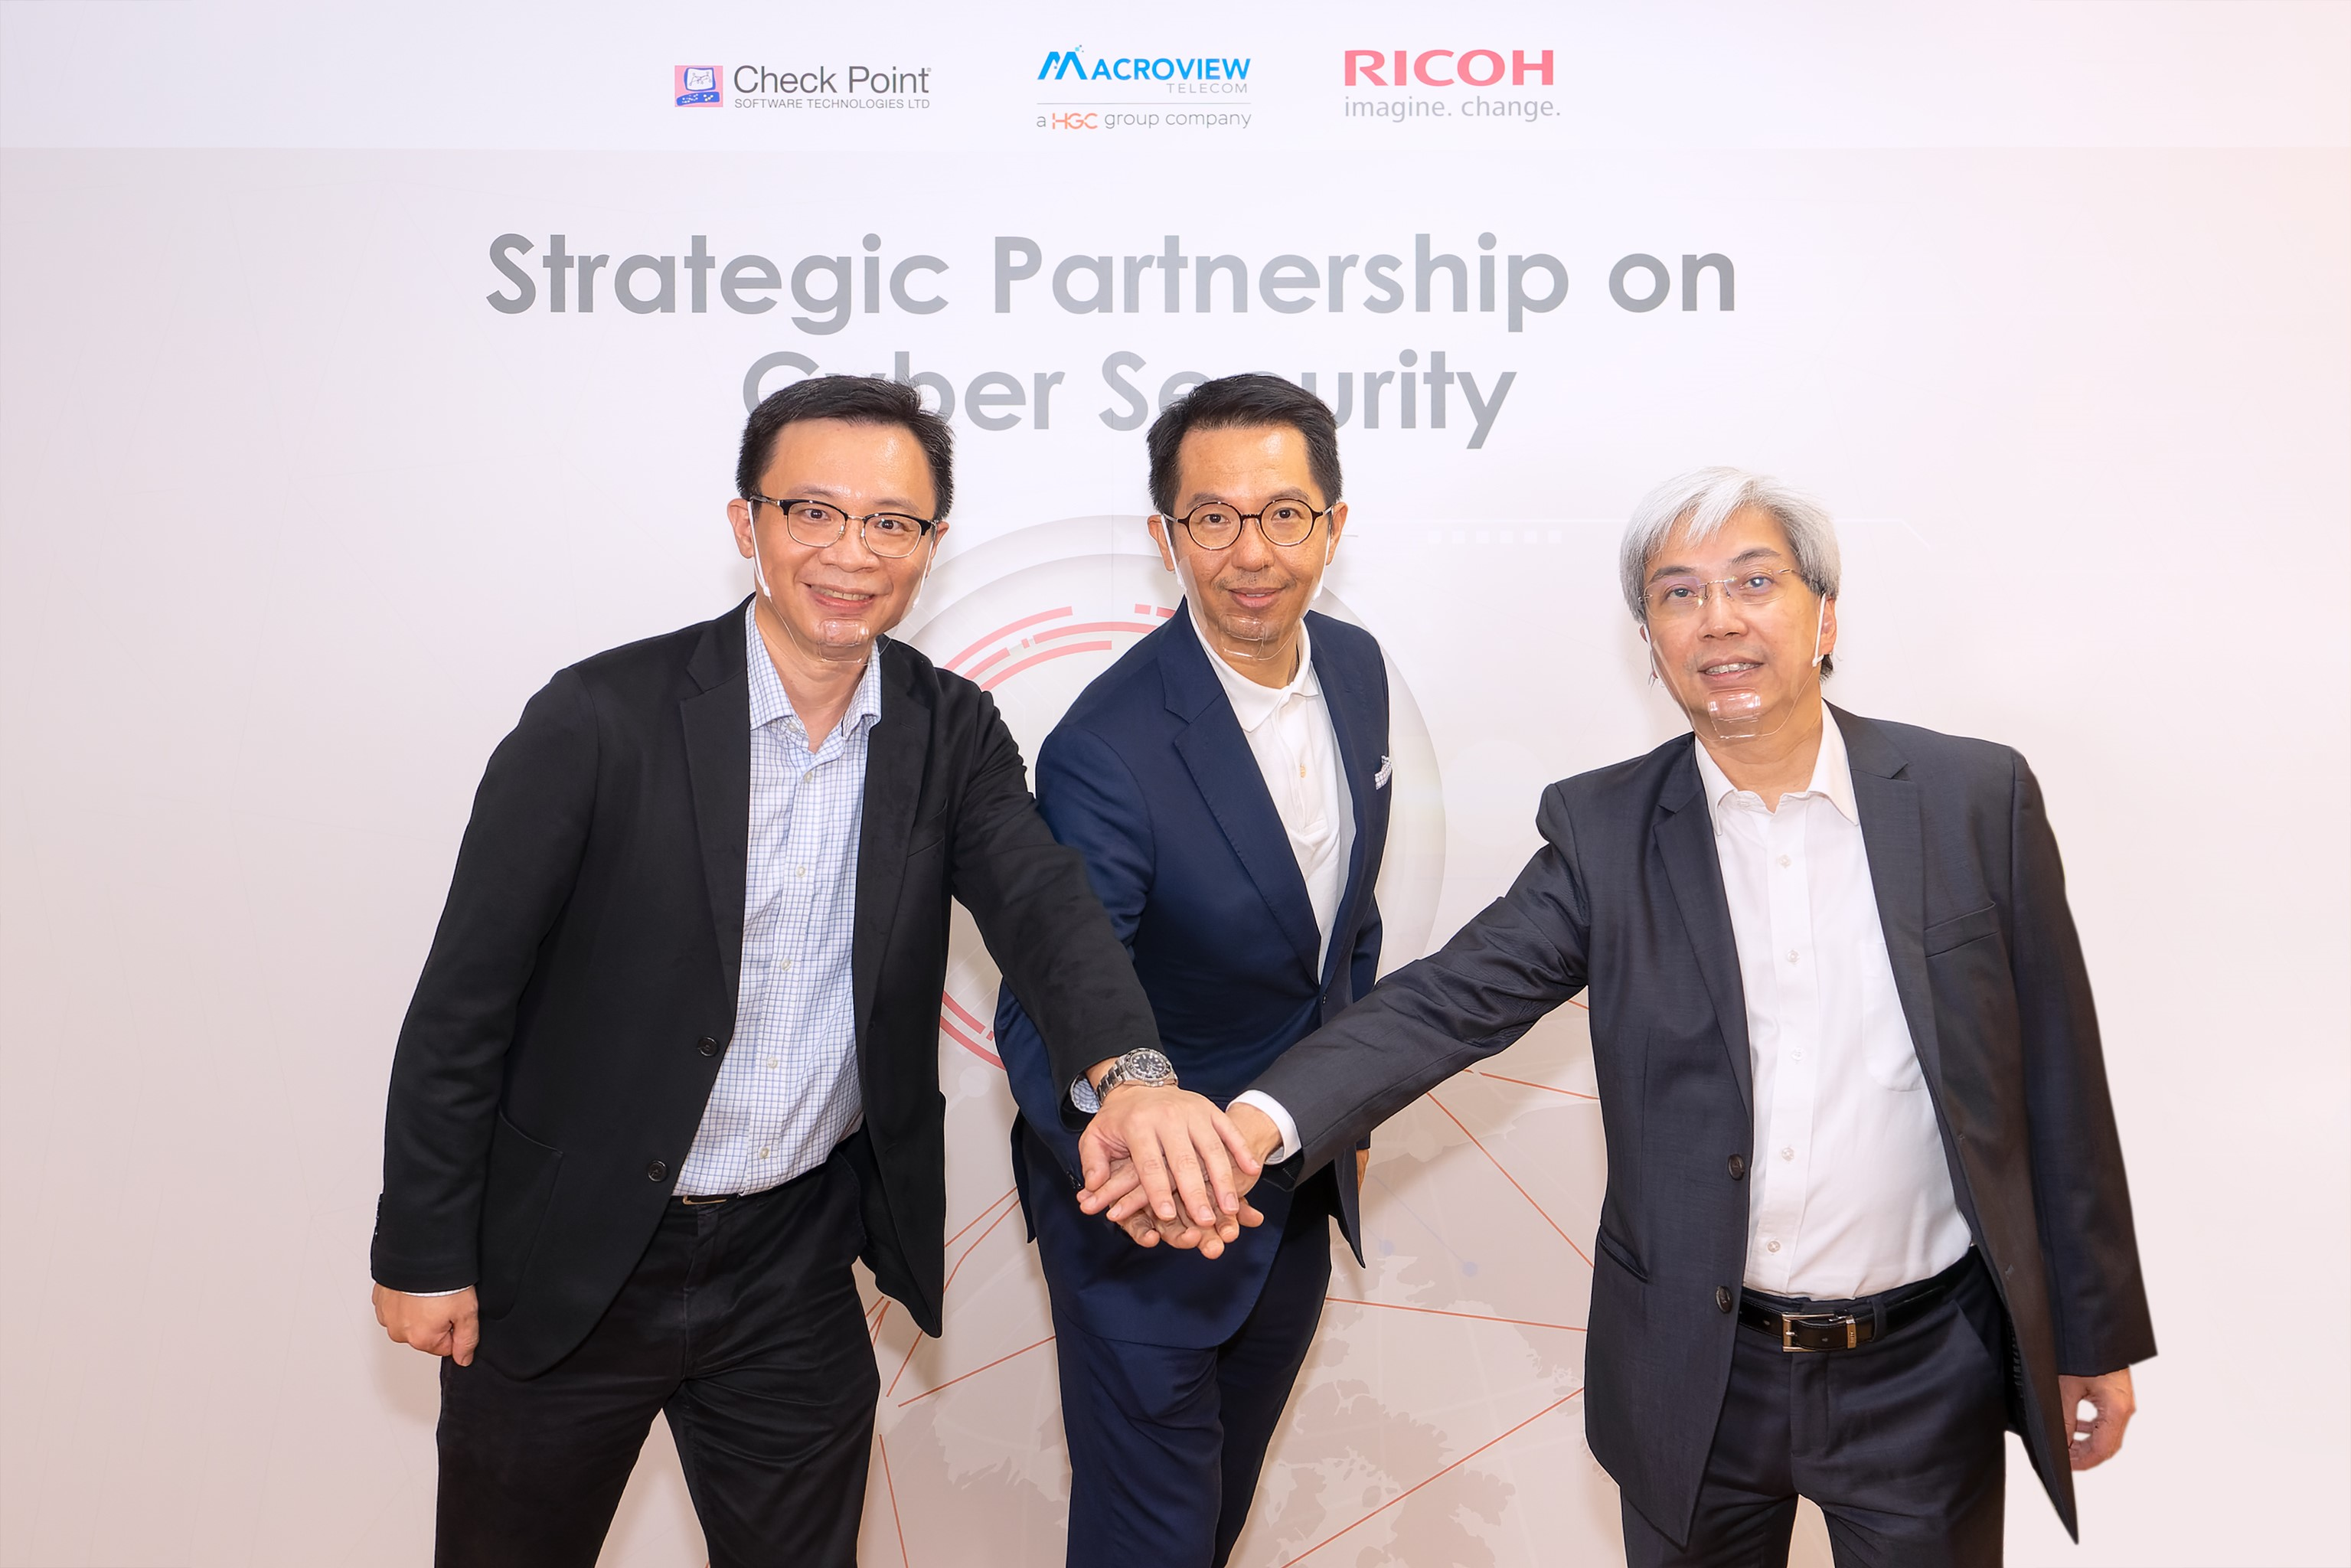 RICOH establishes strategic partnership with Macroview Telecom a HGC Group Company and Check Point